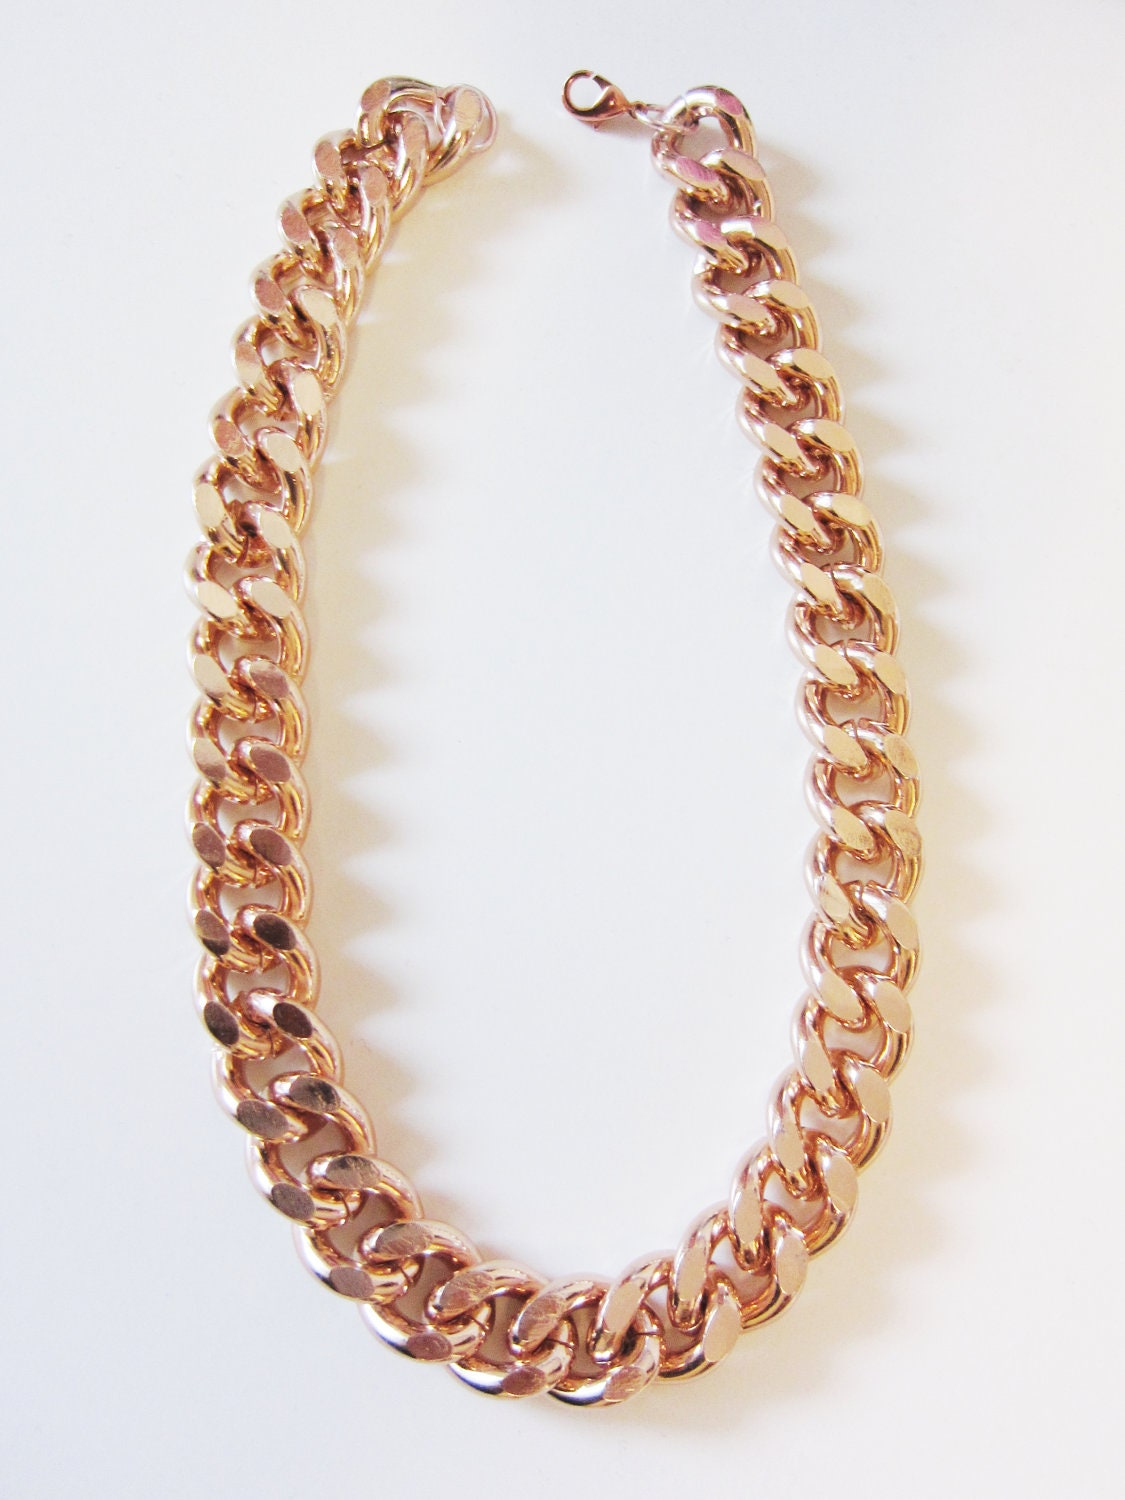 Oversize Chunky Rose Gold Chain Necklace. Vintage Bangles. Real Diamond Pendant. Purple Heart Bracelet. Rose Gold Silver. Knot Wedding Rings. 45cm Necklace. Sterling Silver Beads. Neckless Beads